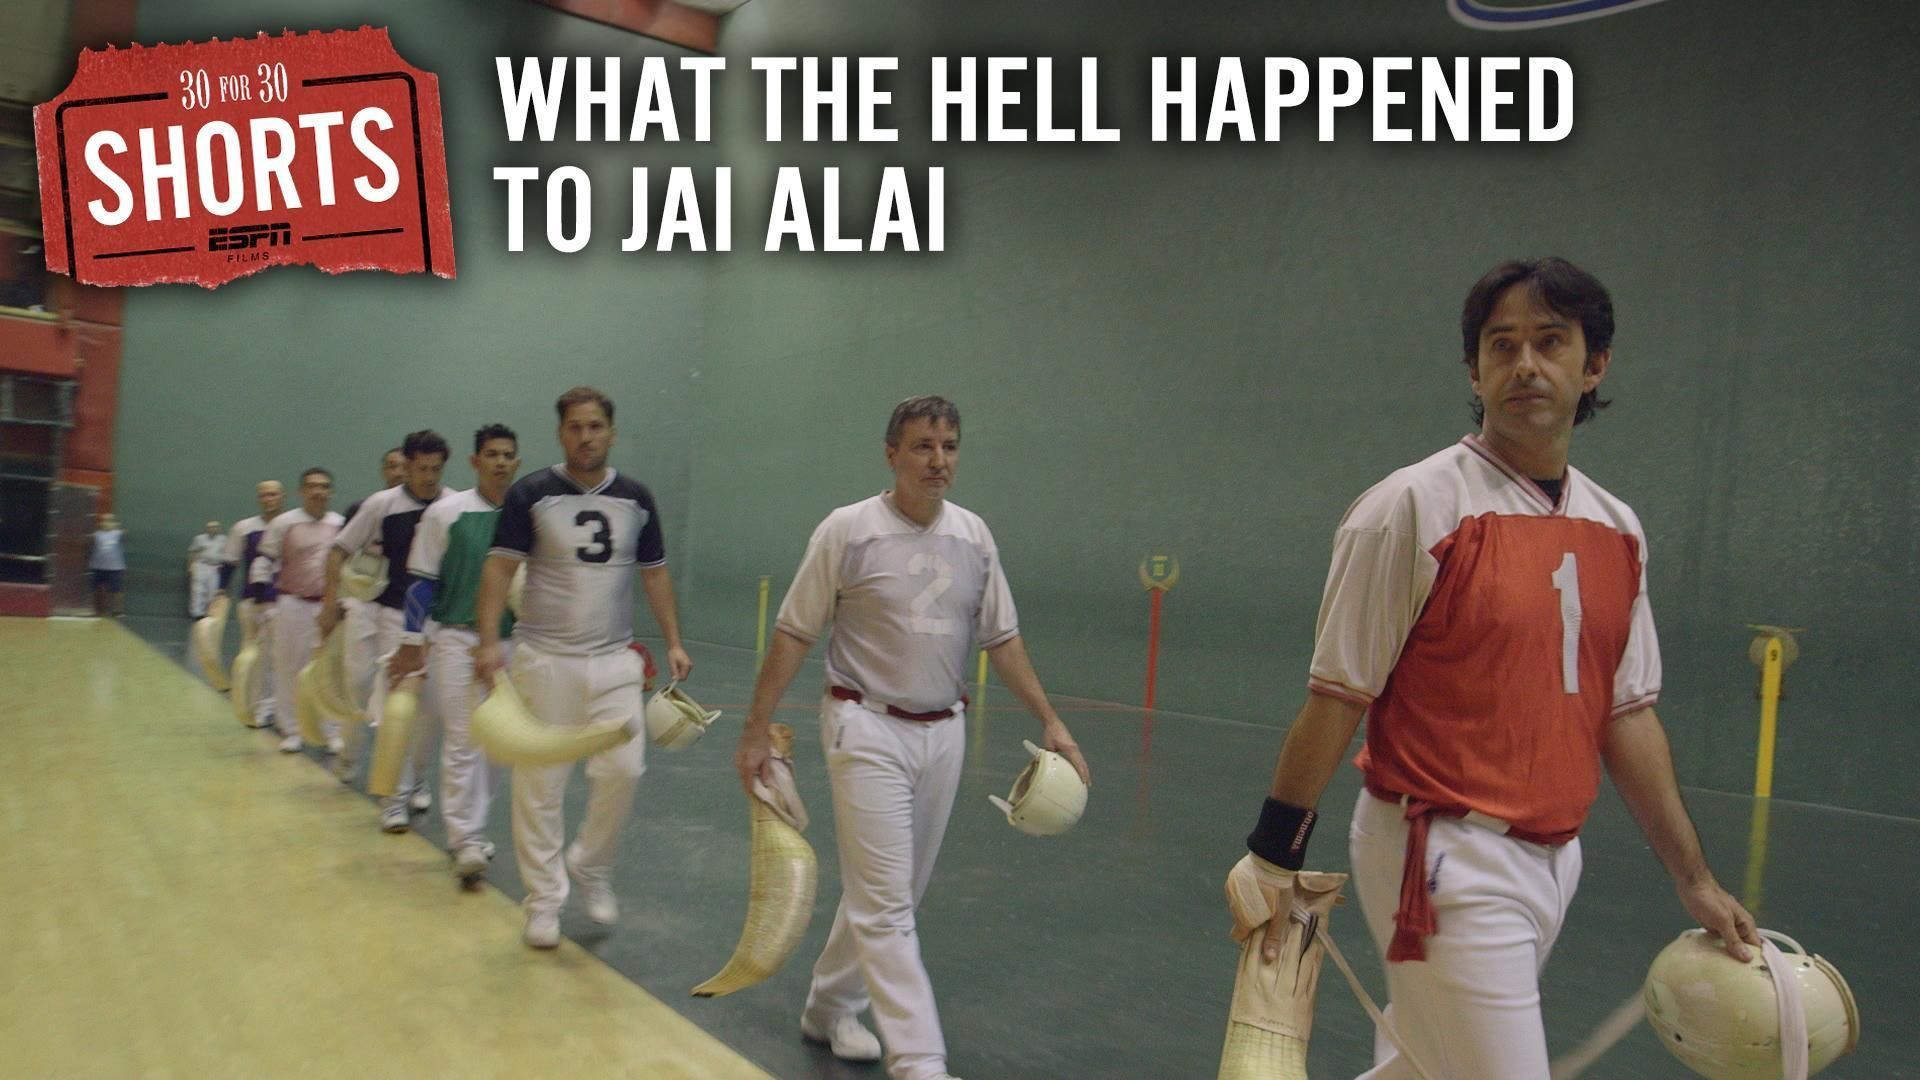 30 for 30 Shorts: What the Hell Happened to Jai-Alai